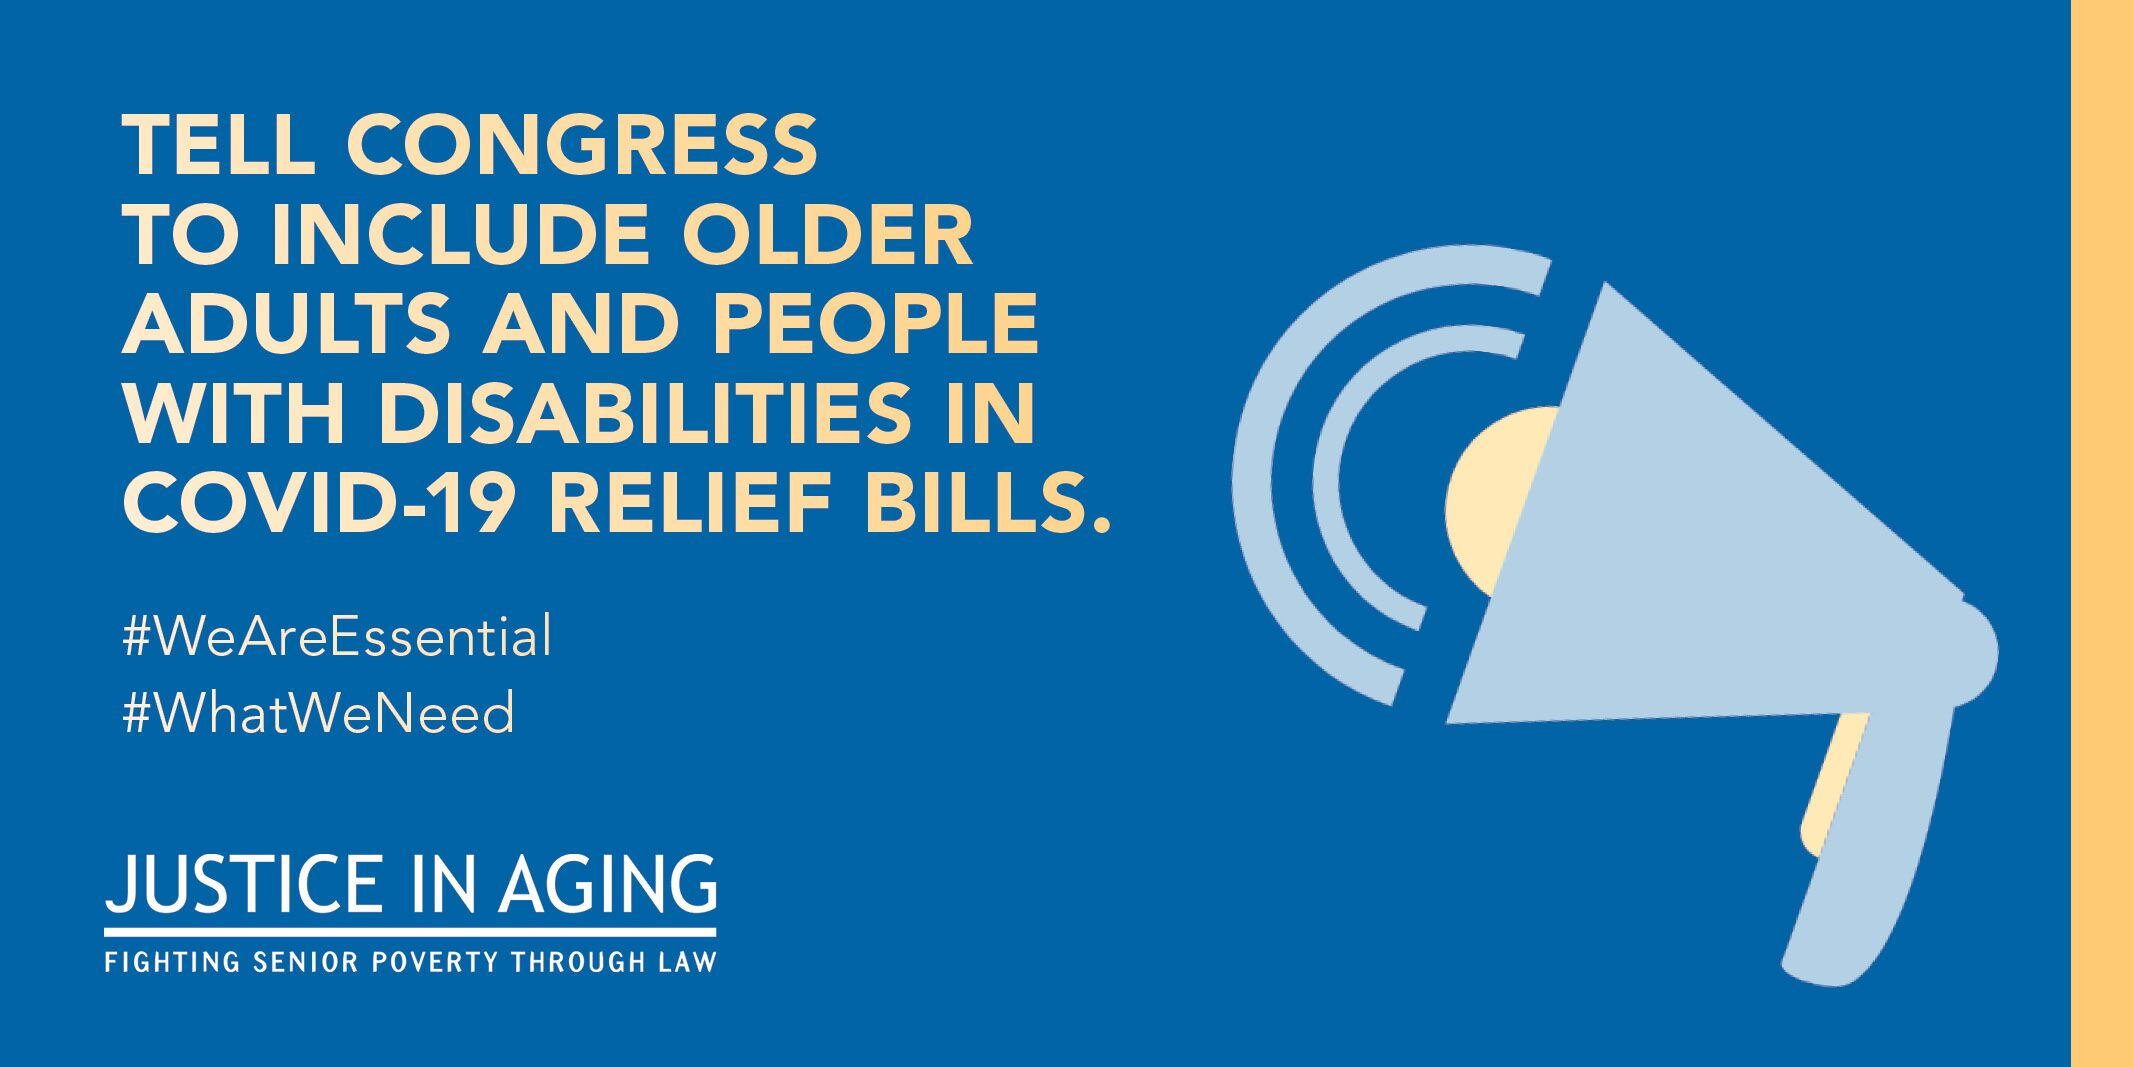 Tell Congree to include older adults and people with disabilities in COVID-19 relief bills. #WeAreEssential #WhatWeNeed